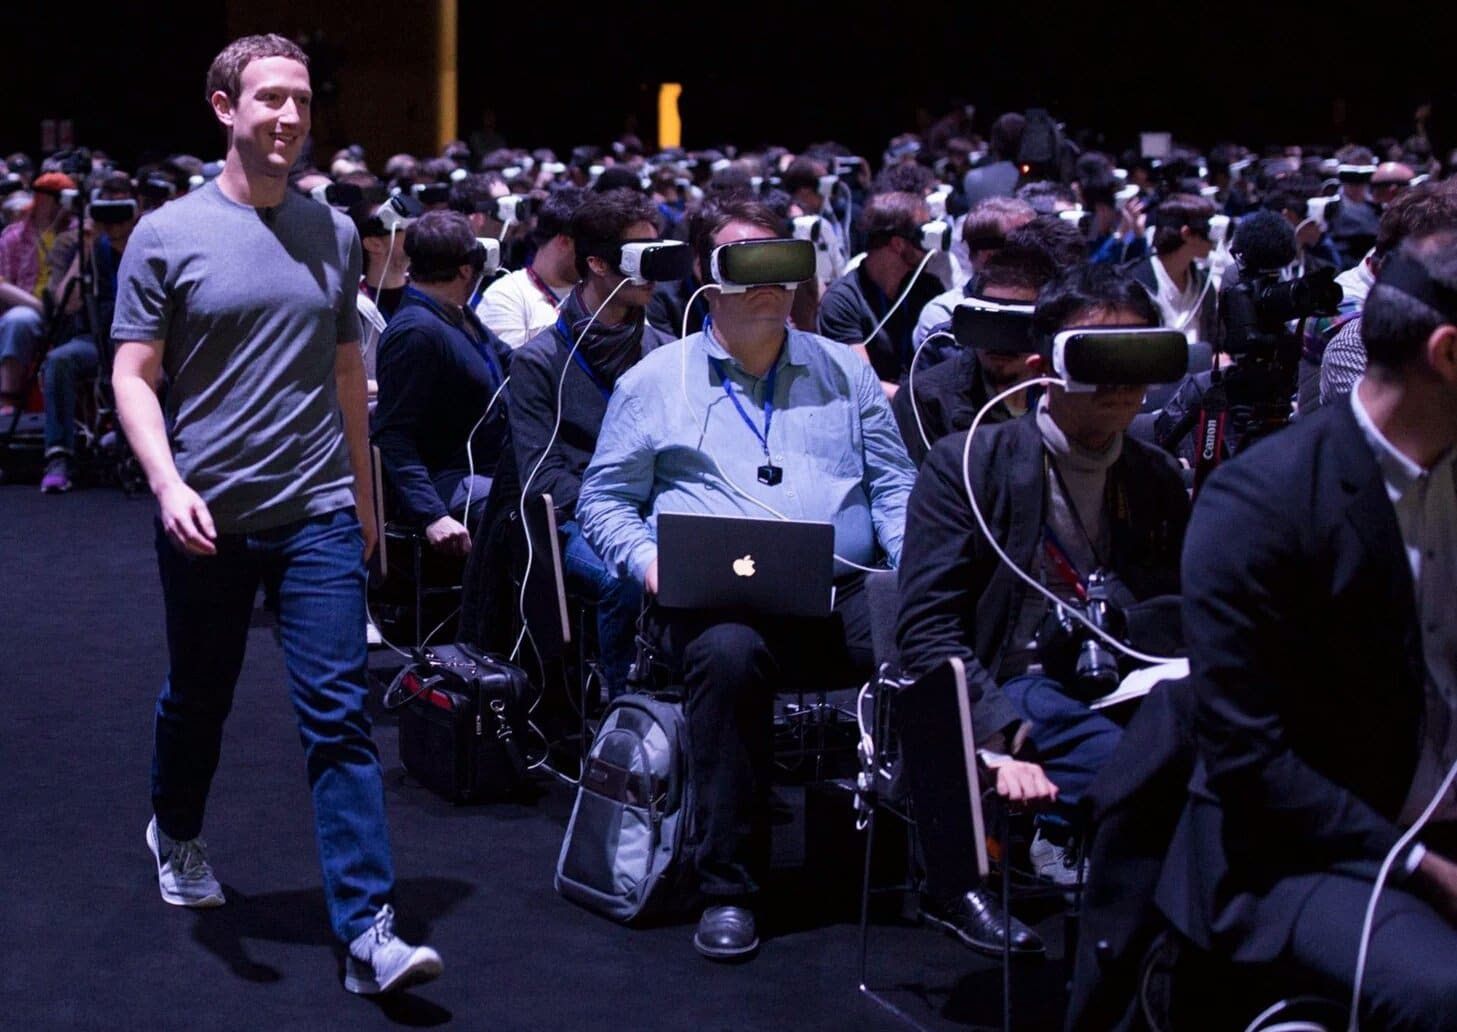 This photo freaked out the world, but there's more to MWC than Zuckerberg